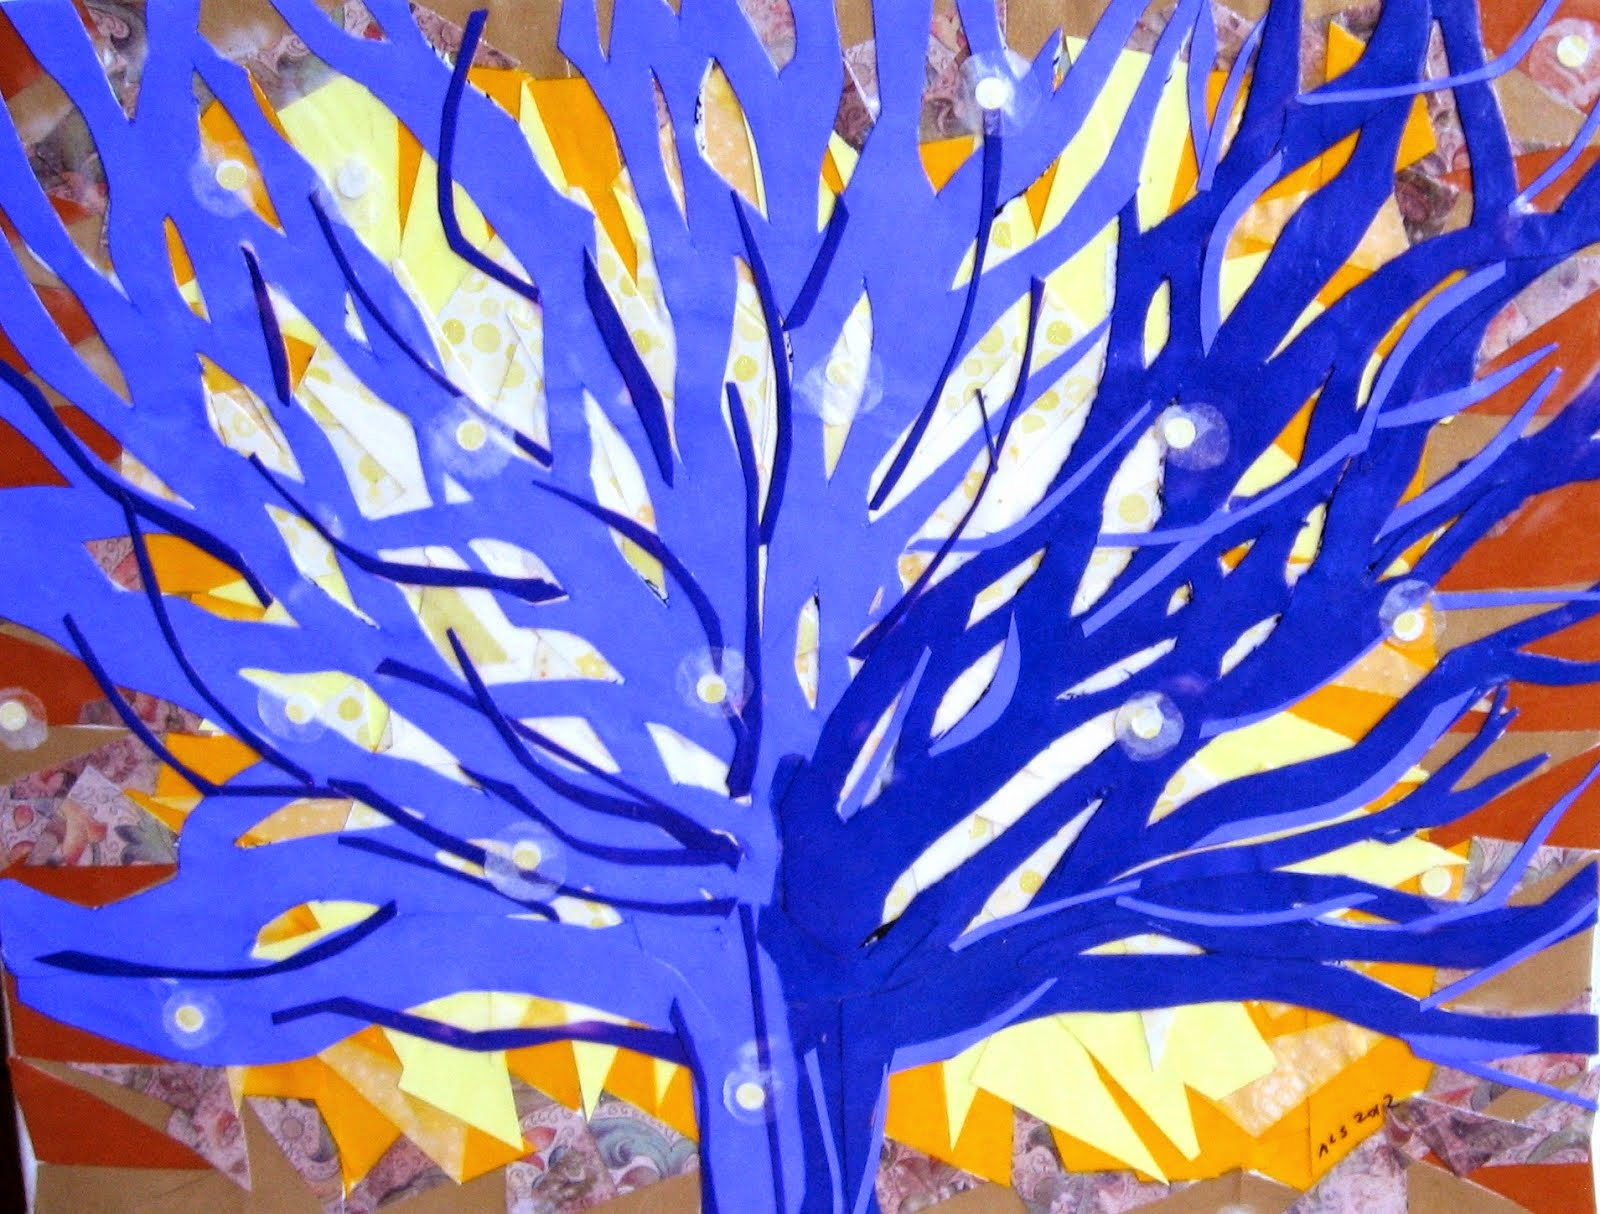 Blue Flame Tree collage